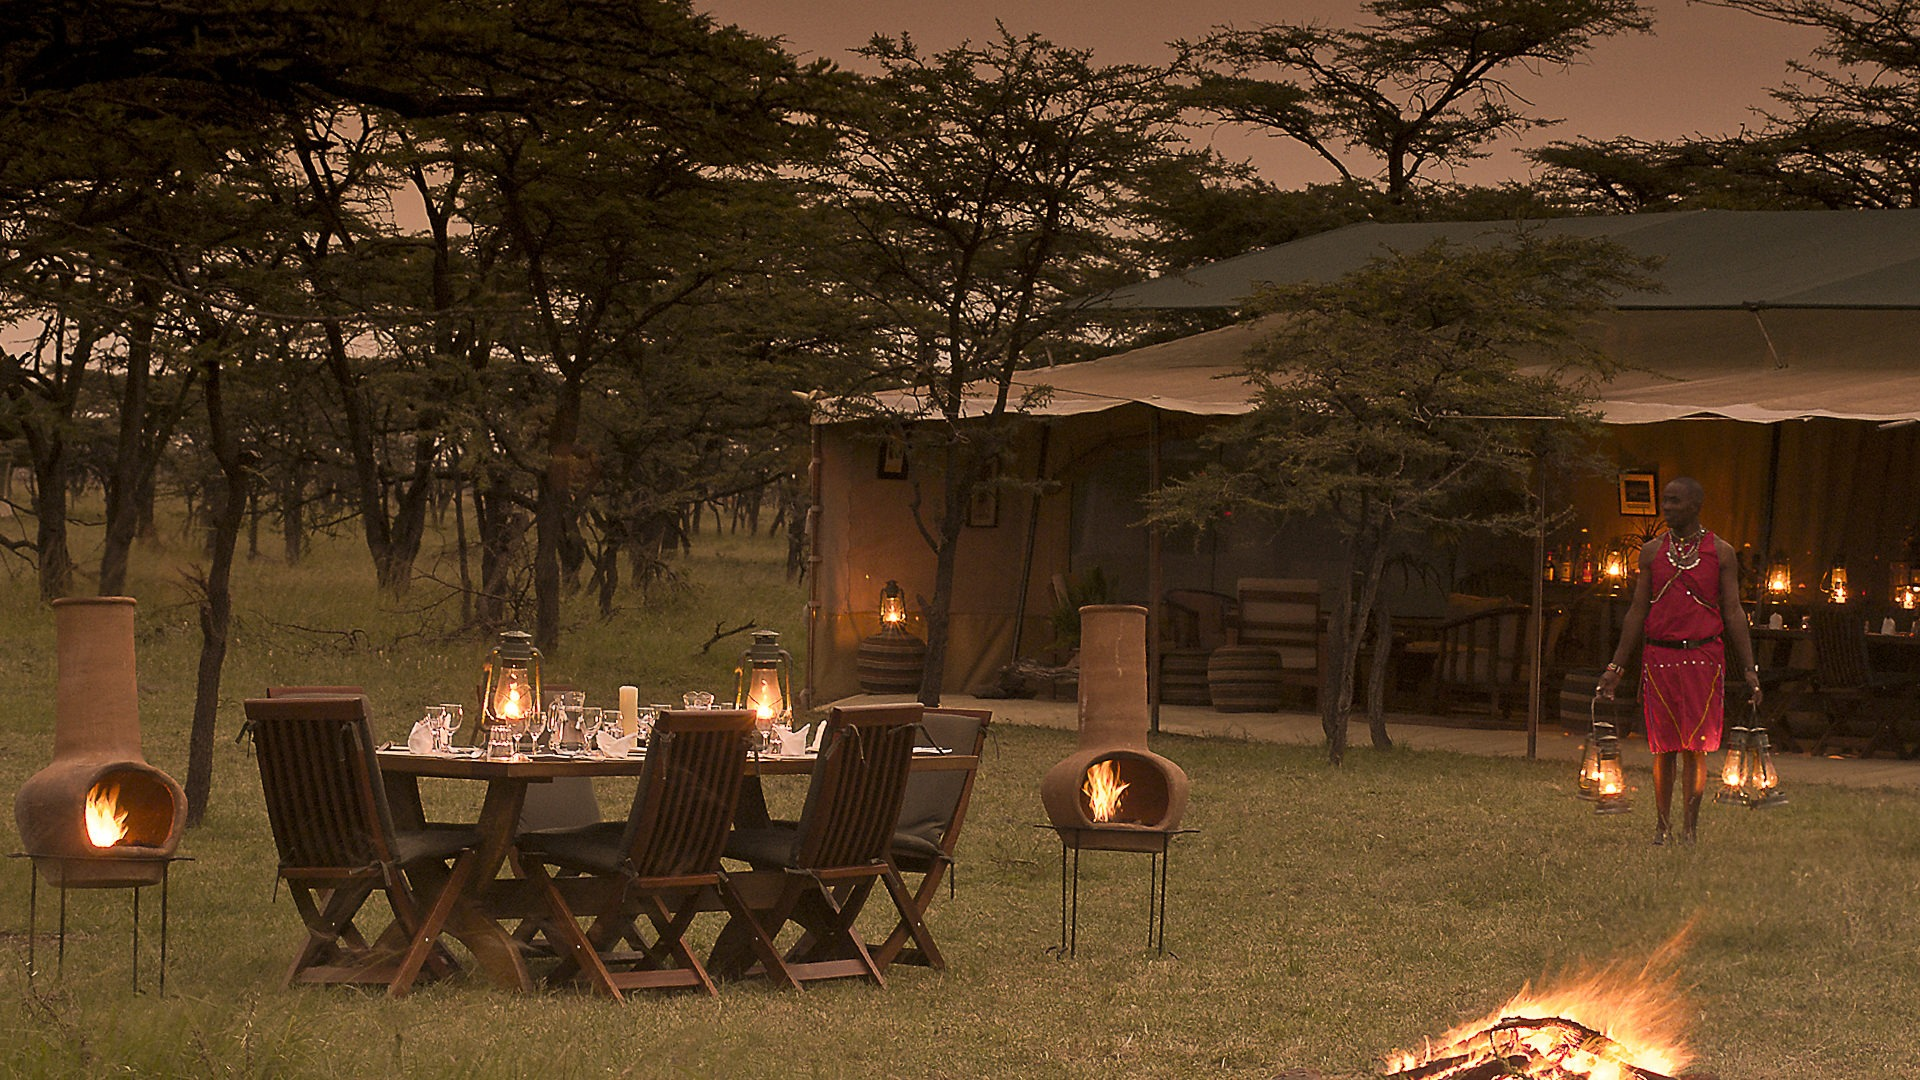 16. Kicheche Bush Camp al fresco dining